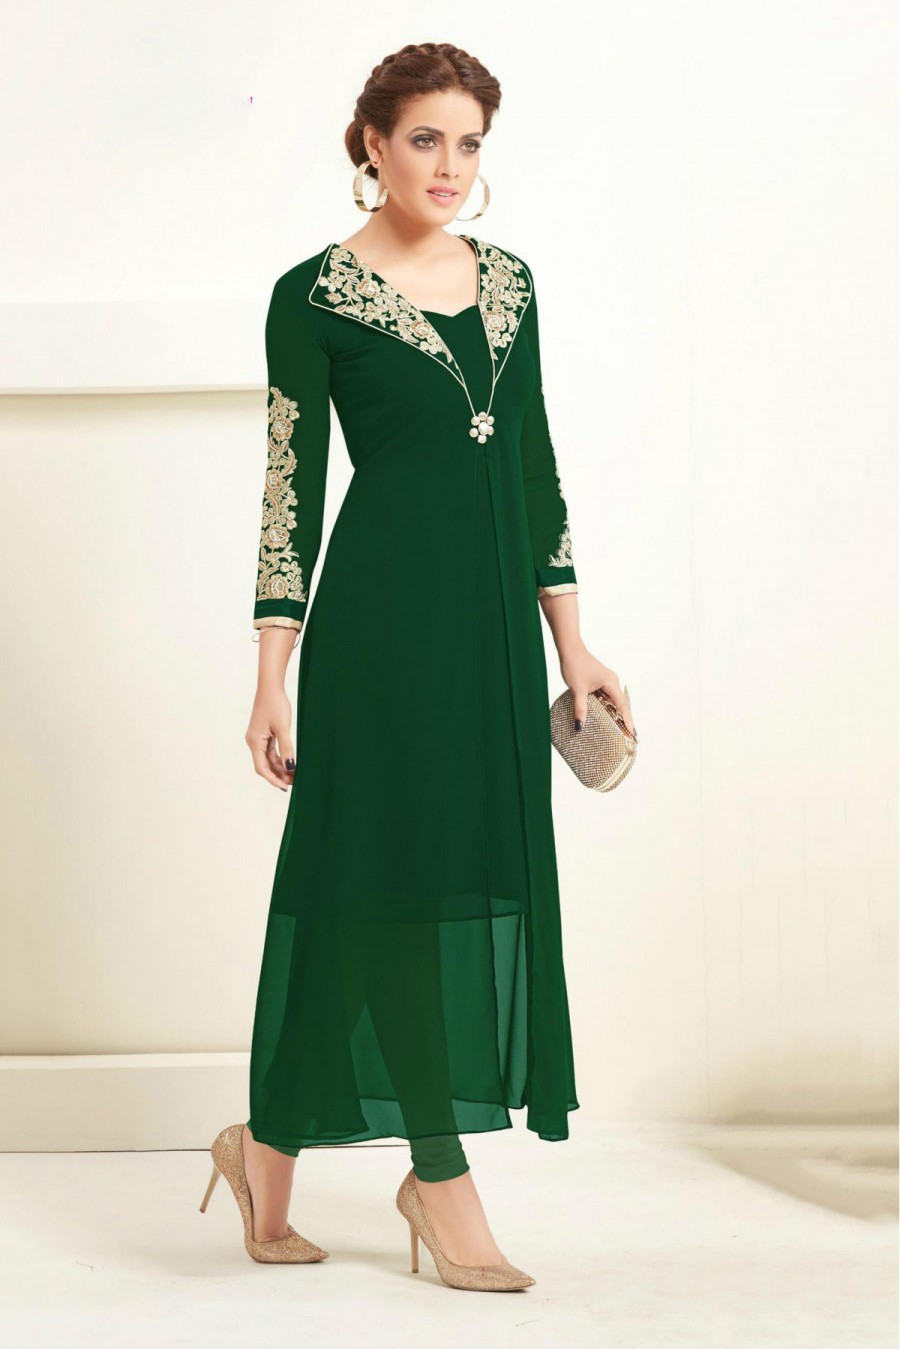 Kurtis Online Shopping | Women Long Kurtas | Designer Kurtis